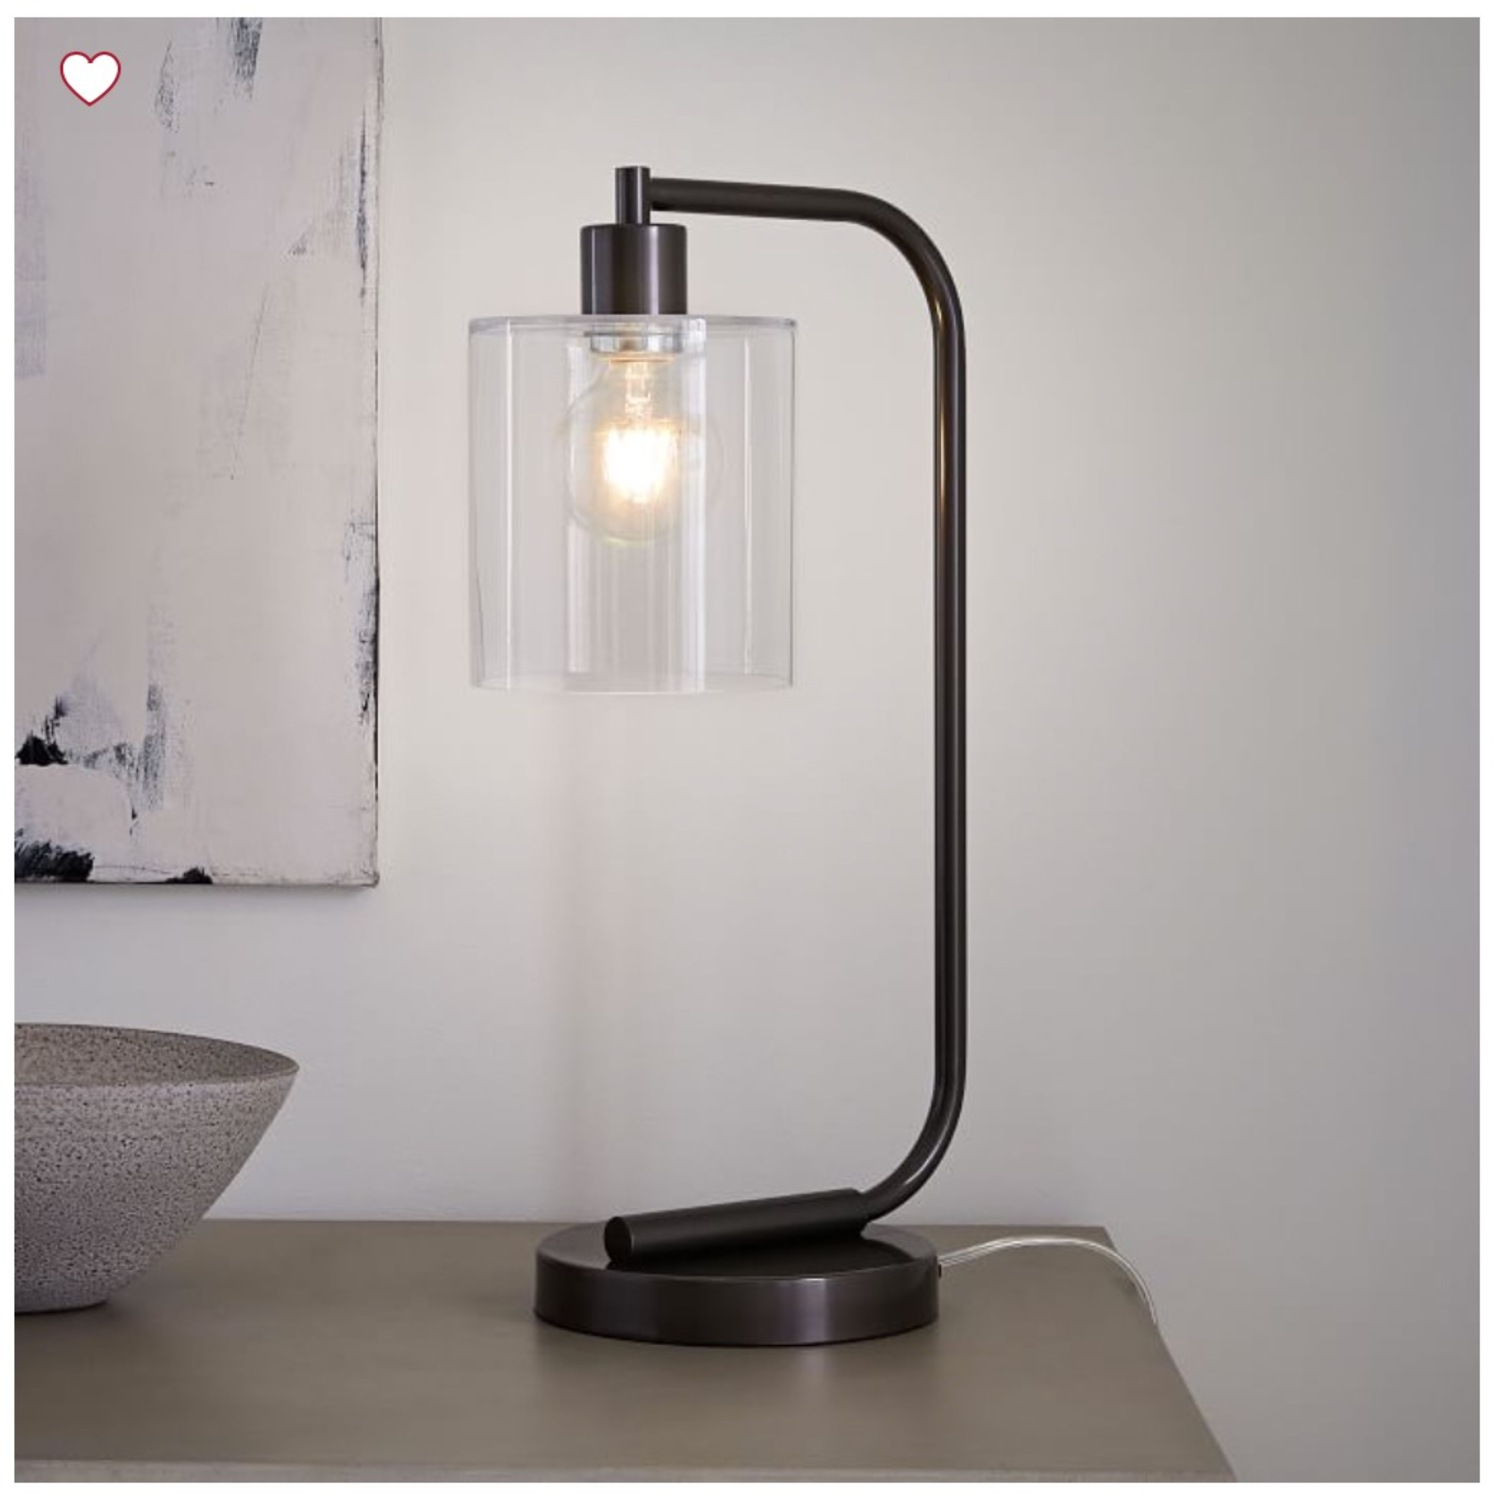 West Elm Lens Table Lamp with USB - image-3